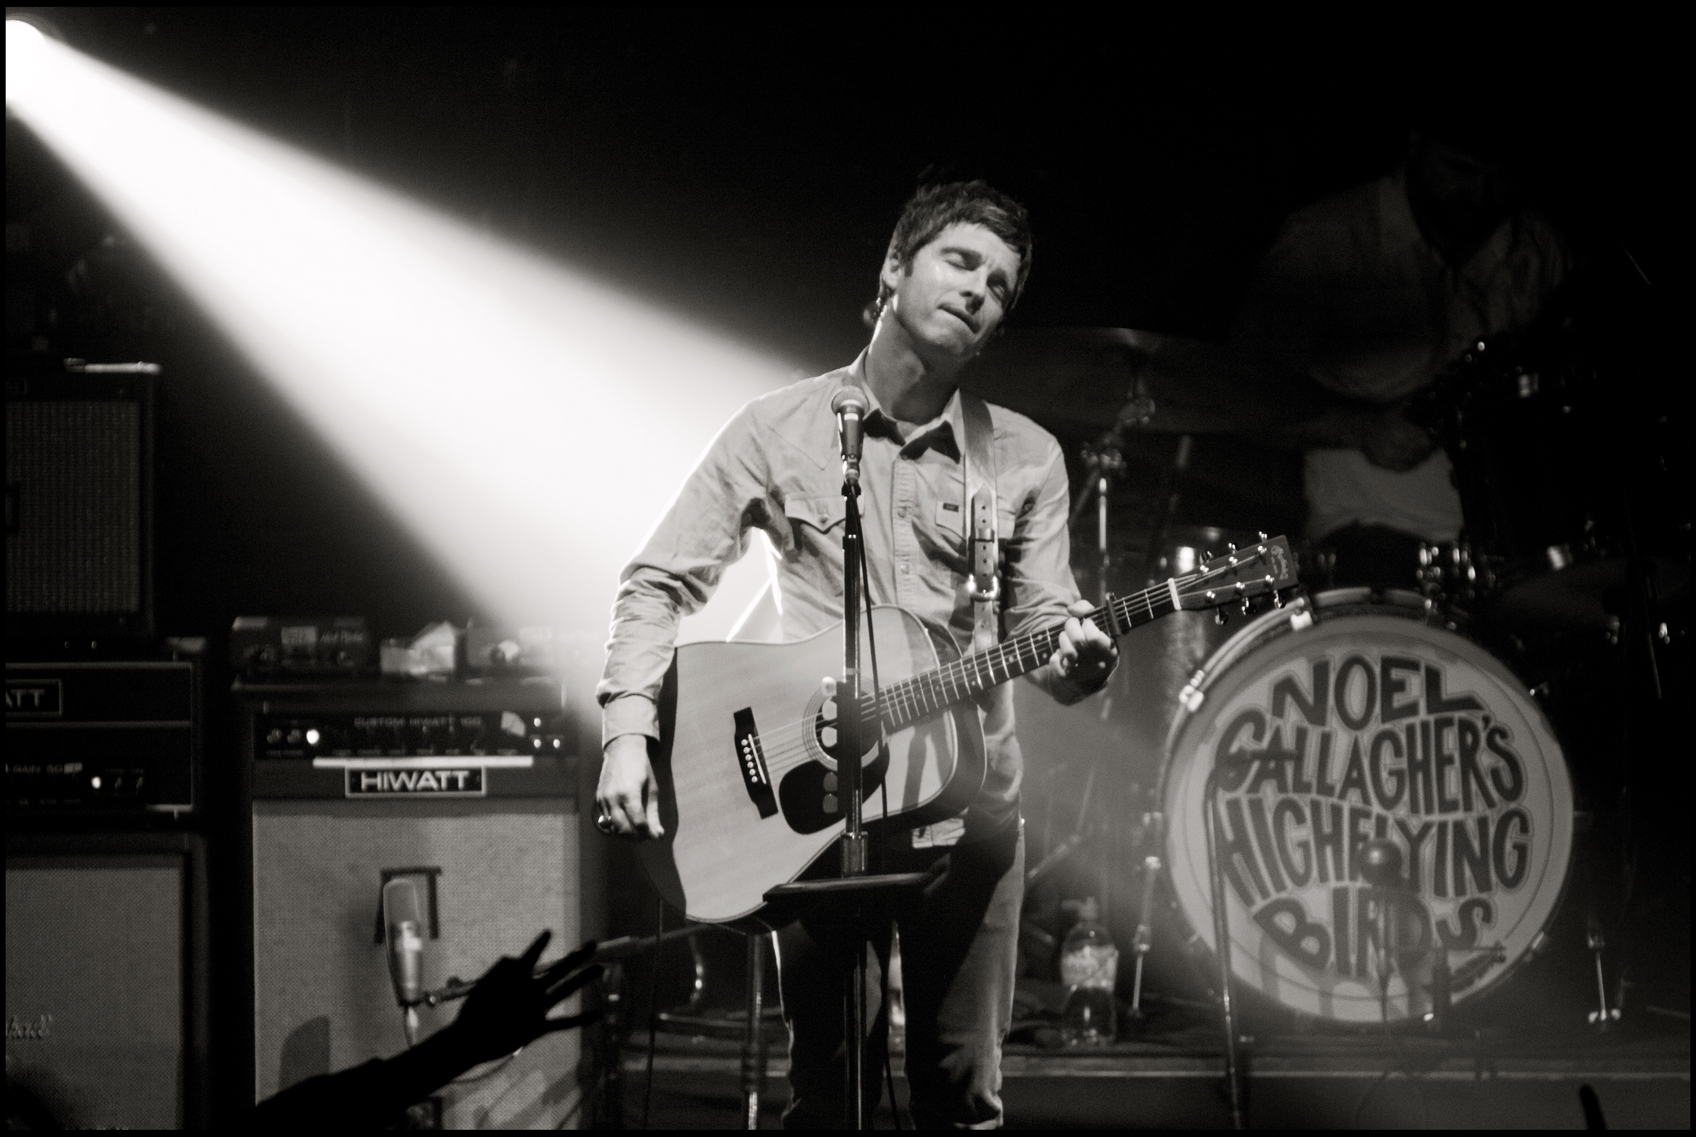 Noel Gallagher's High Flying Birds Live Photo 3 - Noel Gallagher's High Flying Birds Member , HD Wallpaper & Backgrounds